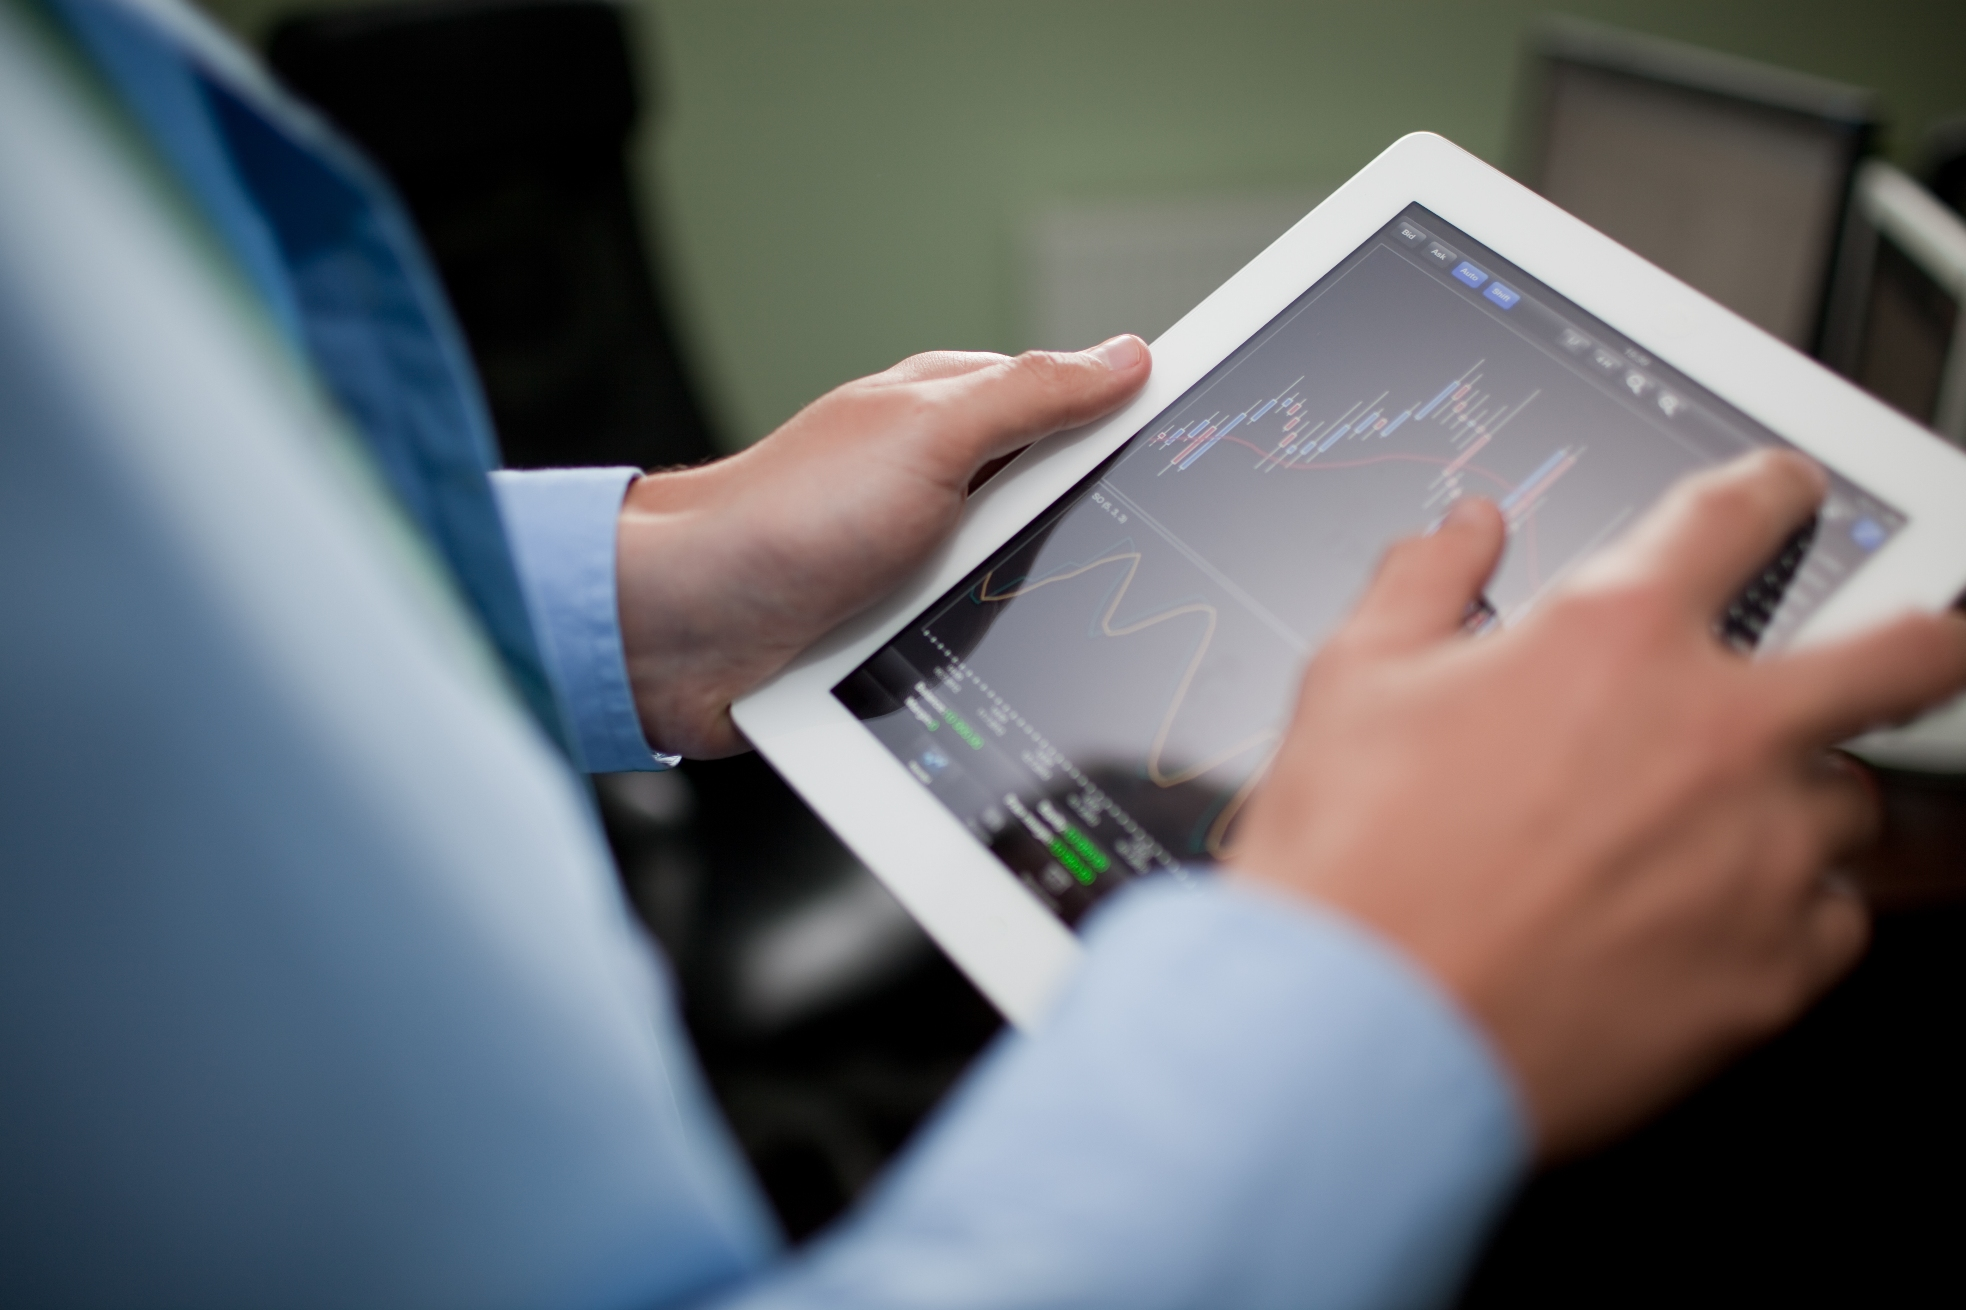 Professional viewing stock information on tablet.